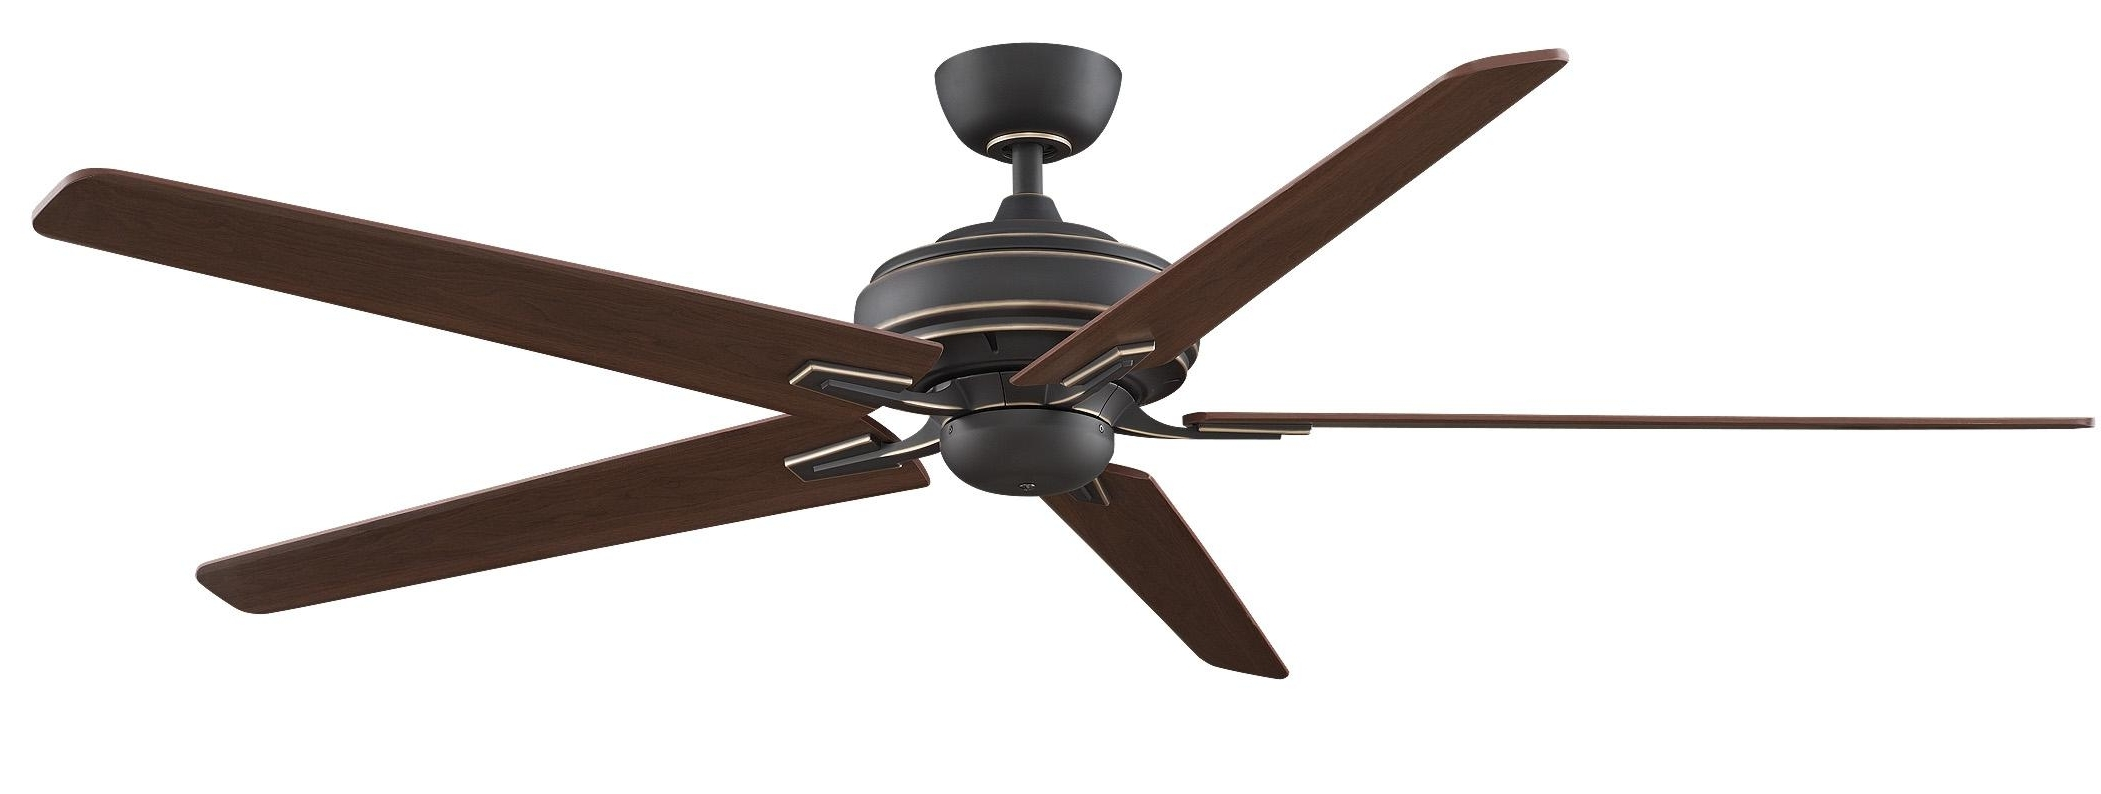 Inch Outdoor Ceiling Fan With 60 Ceiling Fan With Light Inside Most Up To Date Craftsman Outdoor Ceiling Fans (View 12 of 20)